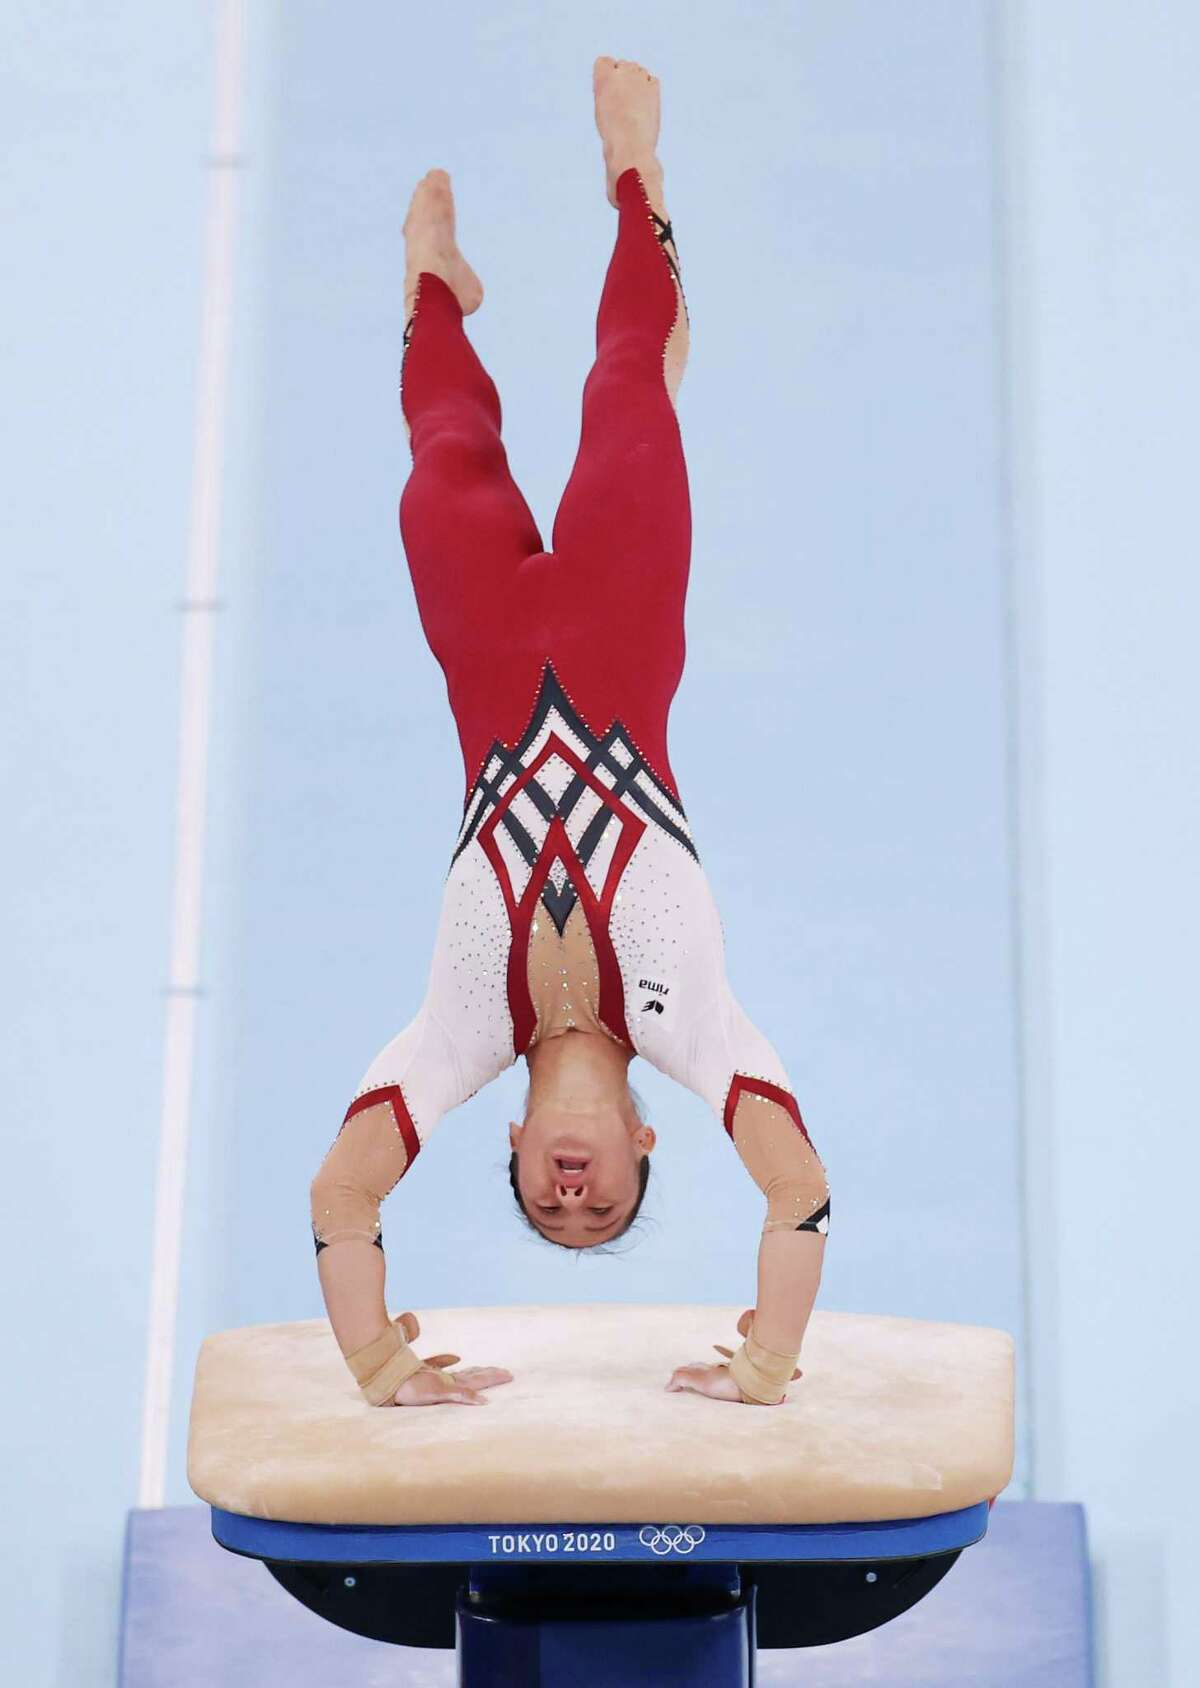 TOKYO, JAPAN - JULY 25: Kim Bui of Team Germany competes on vault during Women's Qualification on day two of the Tokyo 2020 Olympic Games at Ariake Gymnastics Centre on July 25, 2021 in Tokyo, Japan. (Photo by Jamie Squire/Getty Images)